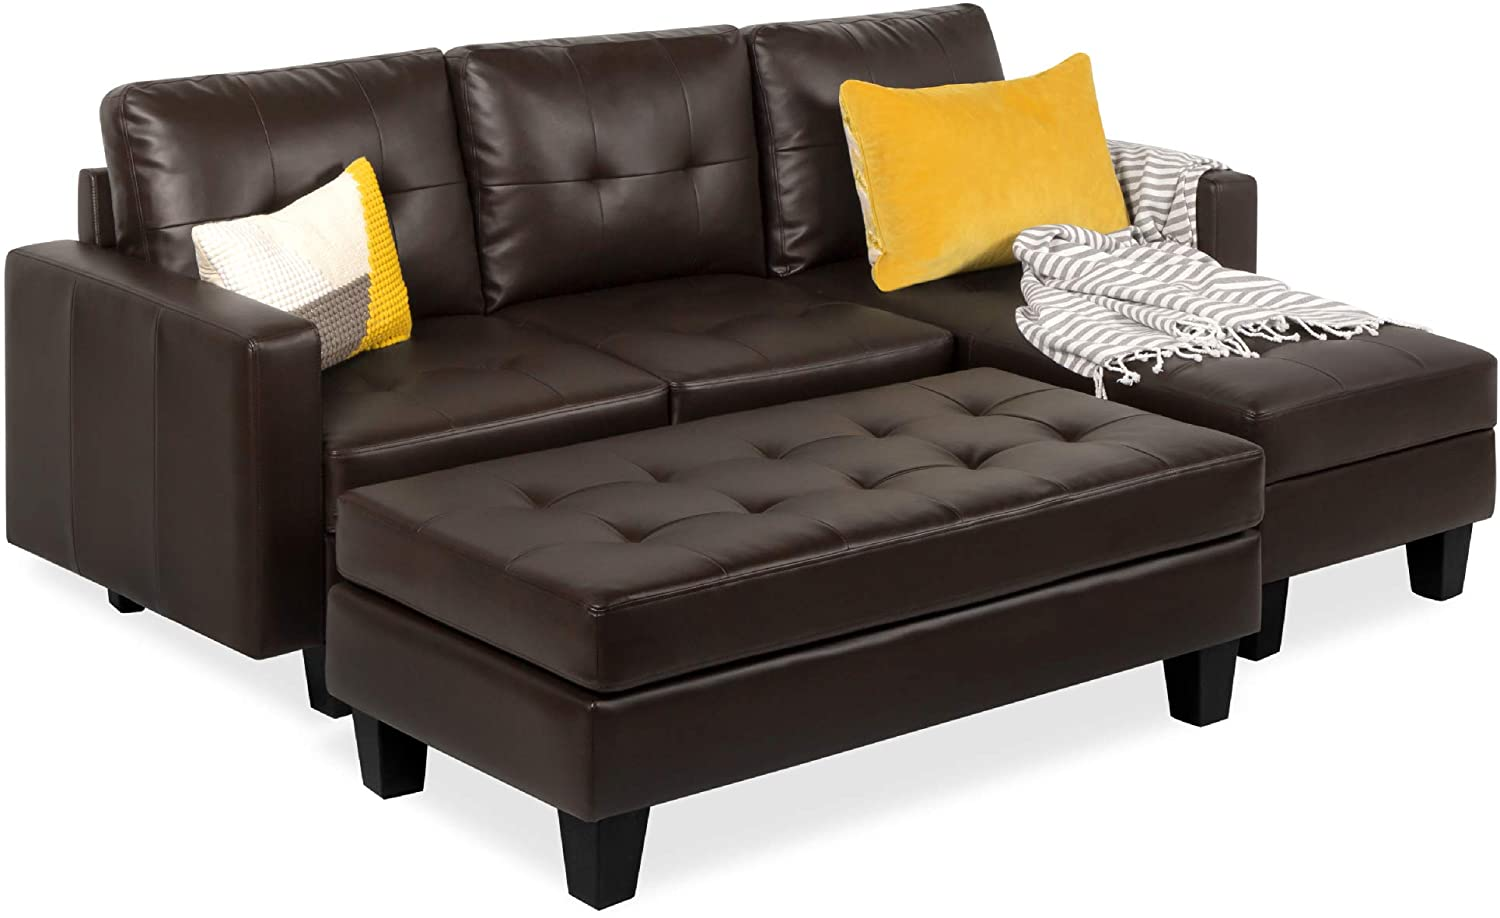 Living room sets on sale, Best choice products 3 Seat